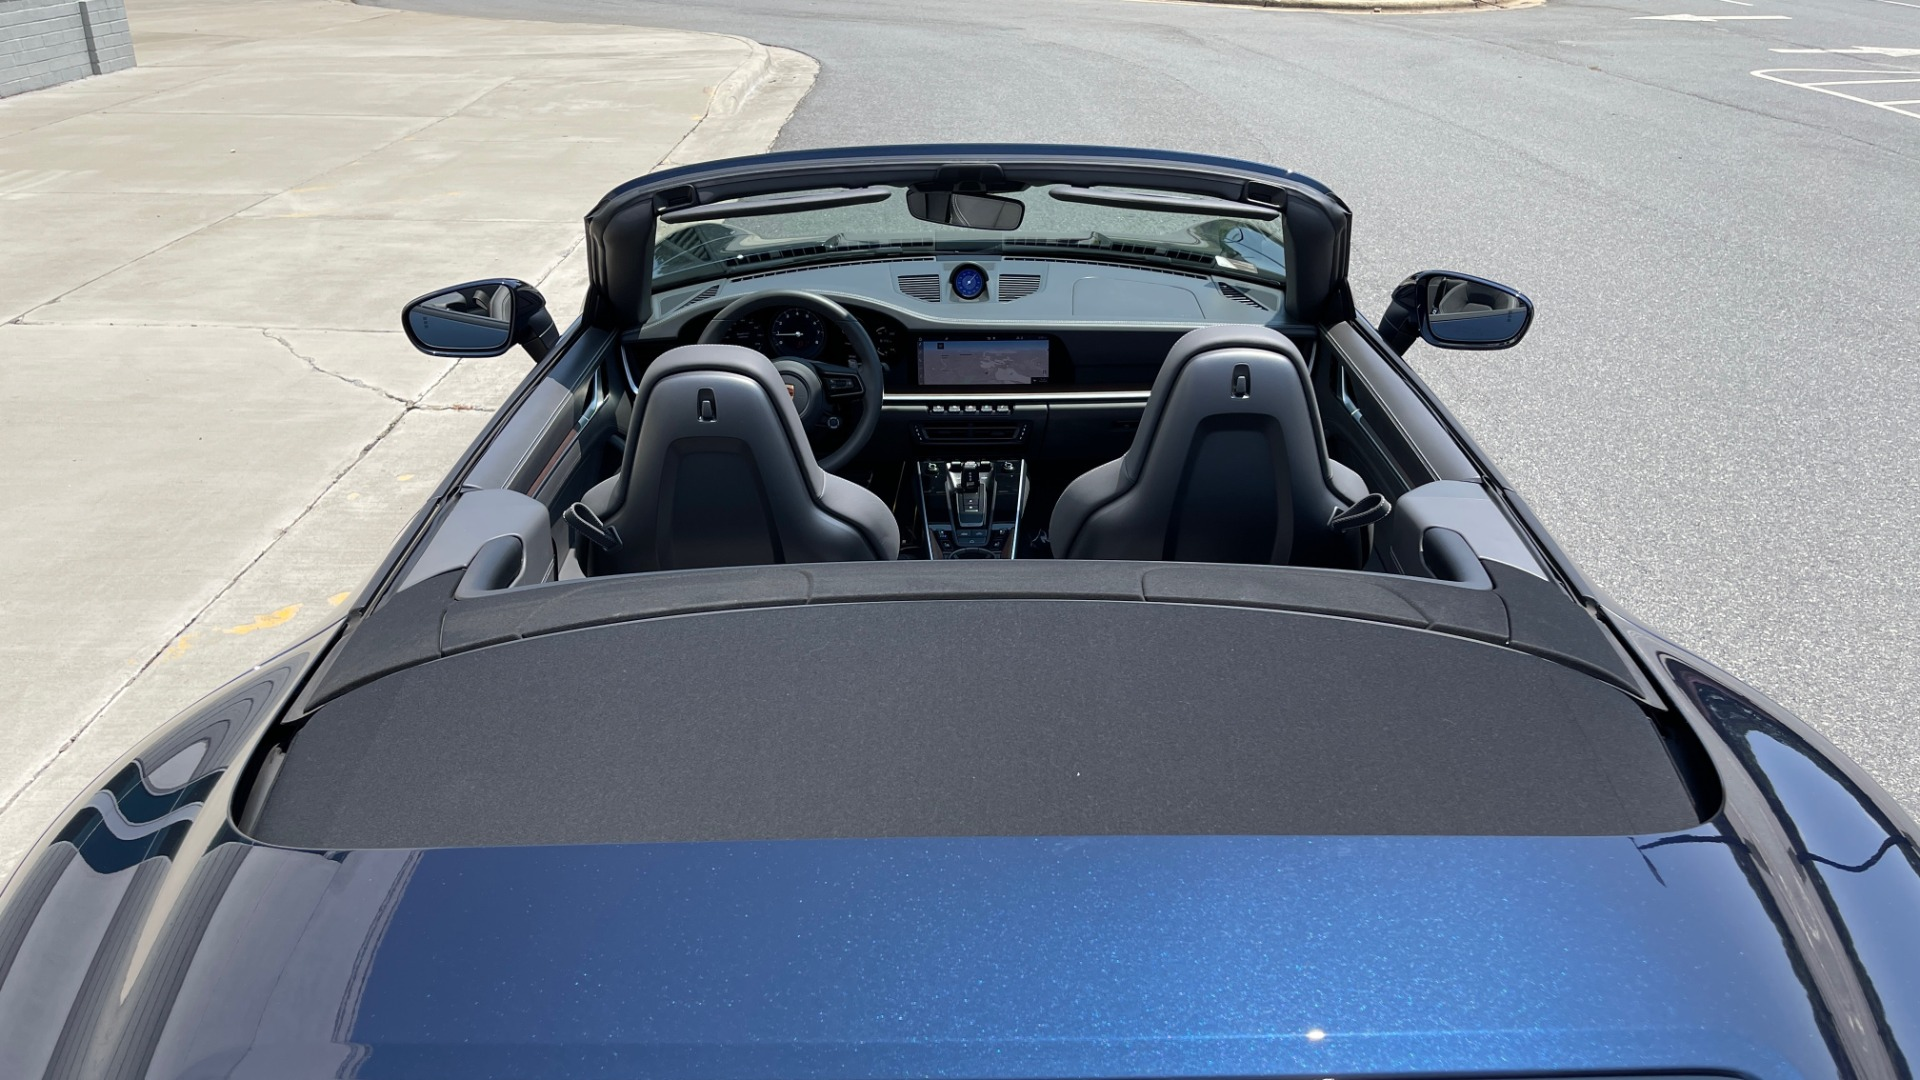 Used 2020 Porsche 911 CARRERA S CABRIOLET PREMIUM SPORT / LCA / ACC / BOSE / REARVIEW for sale $159,995 at Formula Imports in Charlotte NC 28227 85